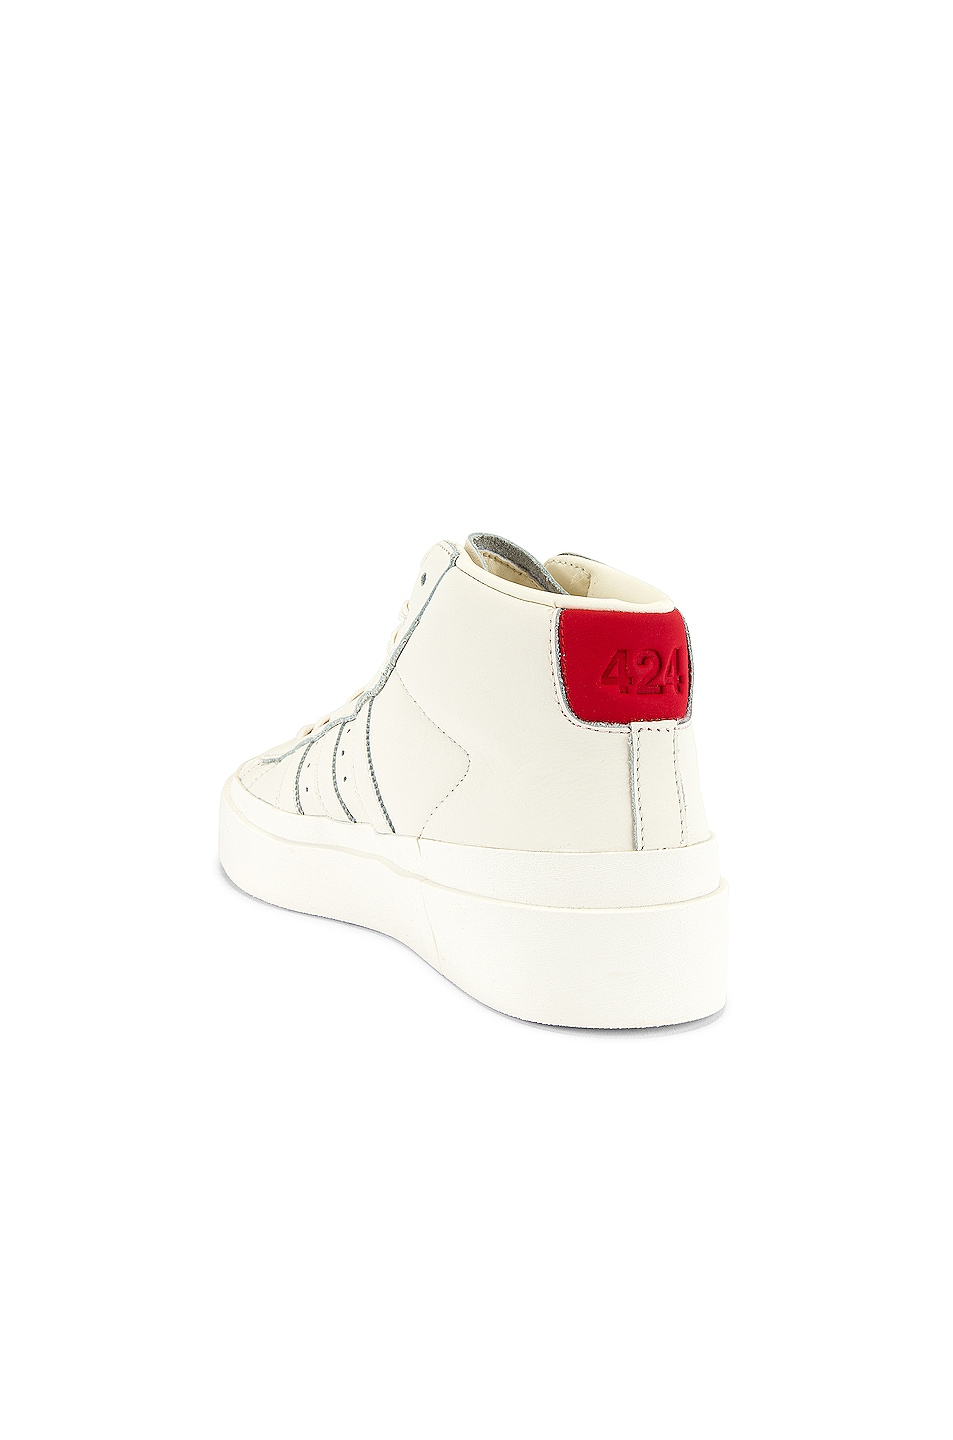 Image 3 of adidas x 424 Pro Model 80S in Chalk White & Chalk White & Chalk White